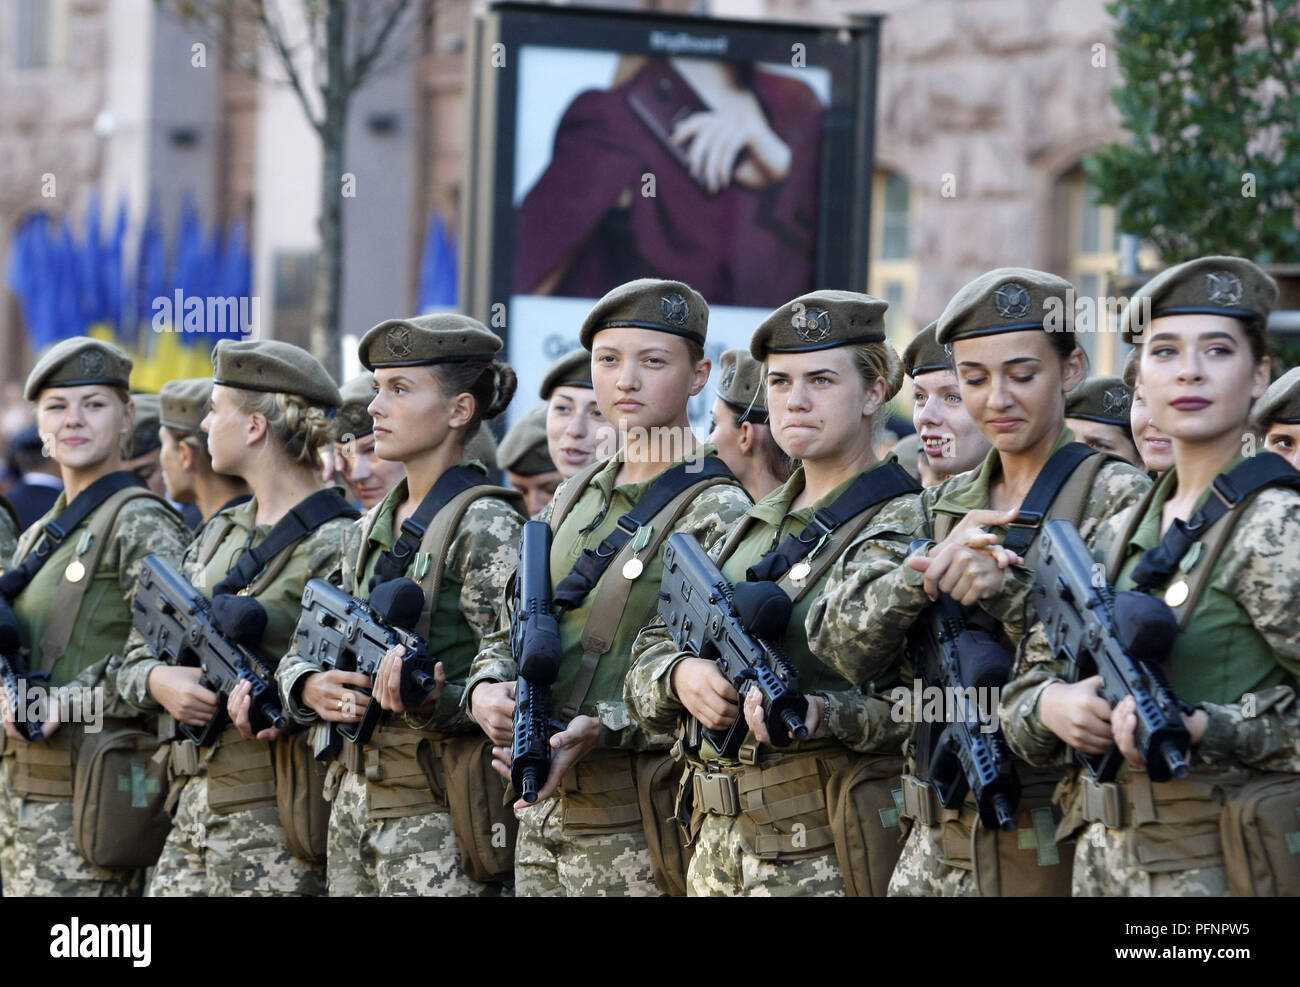 Kiev, Ukraine. 22nd Aug, 2018. Ukrainian servicewomen take part at a rehearsal of the military parade to Independence Day, in center of Kiev, Ukraine, on 22 August 2018. Ukraine will celebrate 27th anniversary of Independence on 24 August. Credit: Serg Glovny/ZUMA Wire/Alamy Live News - Stock Image